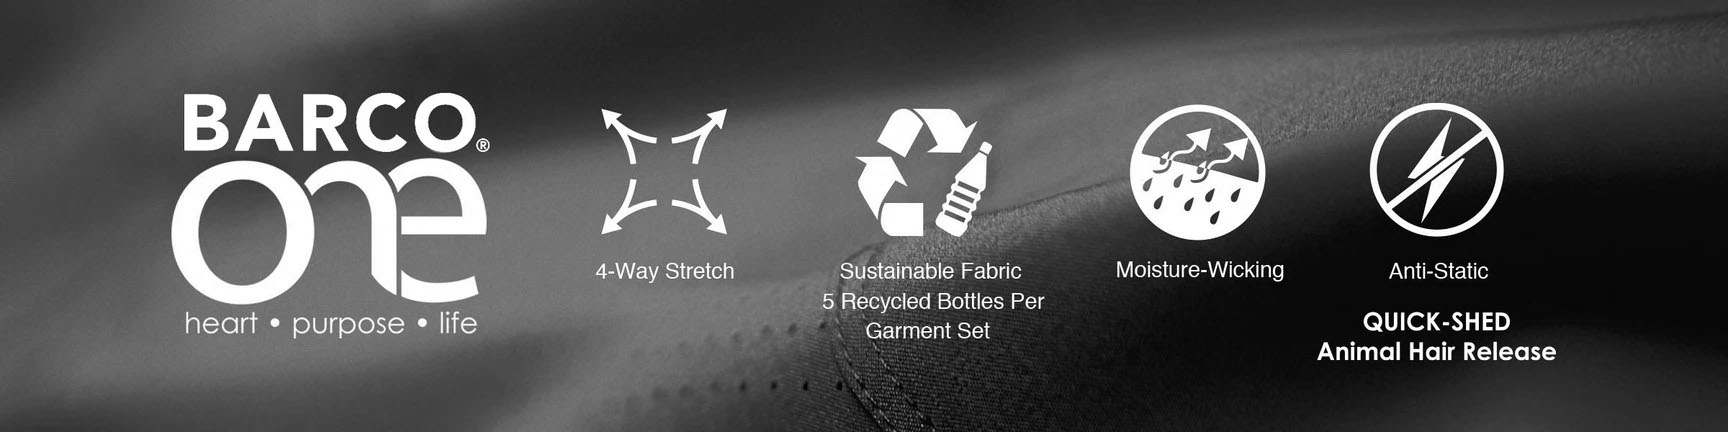 Shop sustainable Barco One uniforms and scrubs. With 4 way stretch, sustainable fabric, moisture wicking technology and anti-static properties to quick shed animal hair. See annd feel the difference Barco Made medical apparel makes.